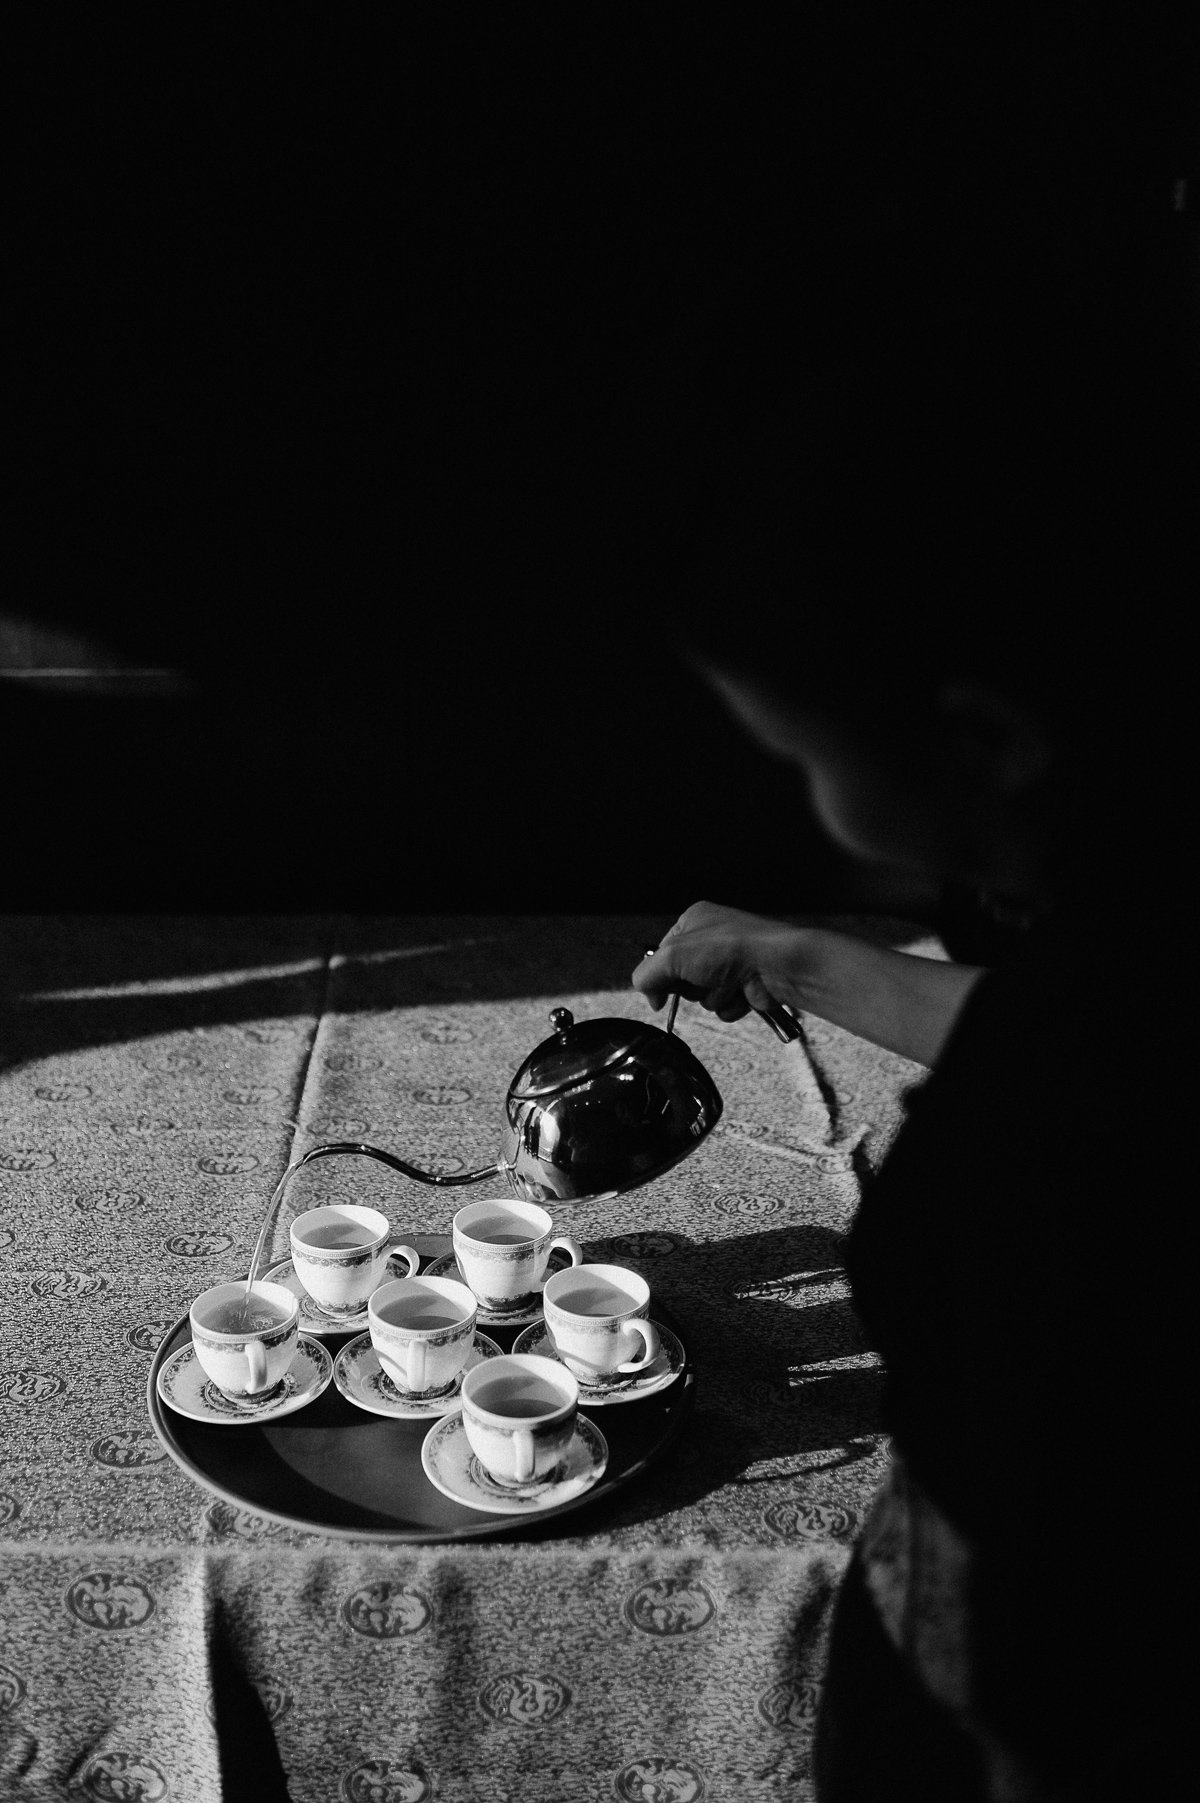 Tea ceremony in Singapore wedding, black and white